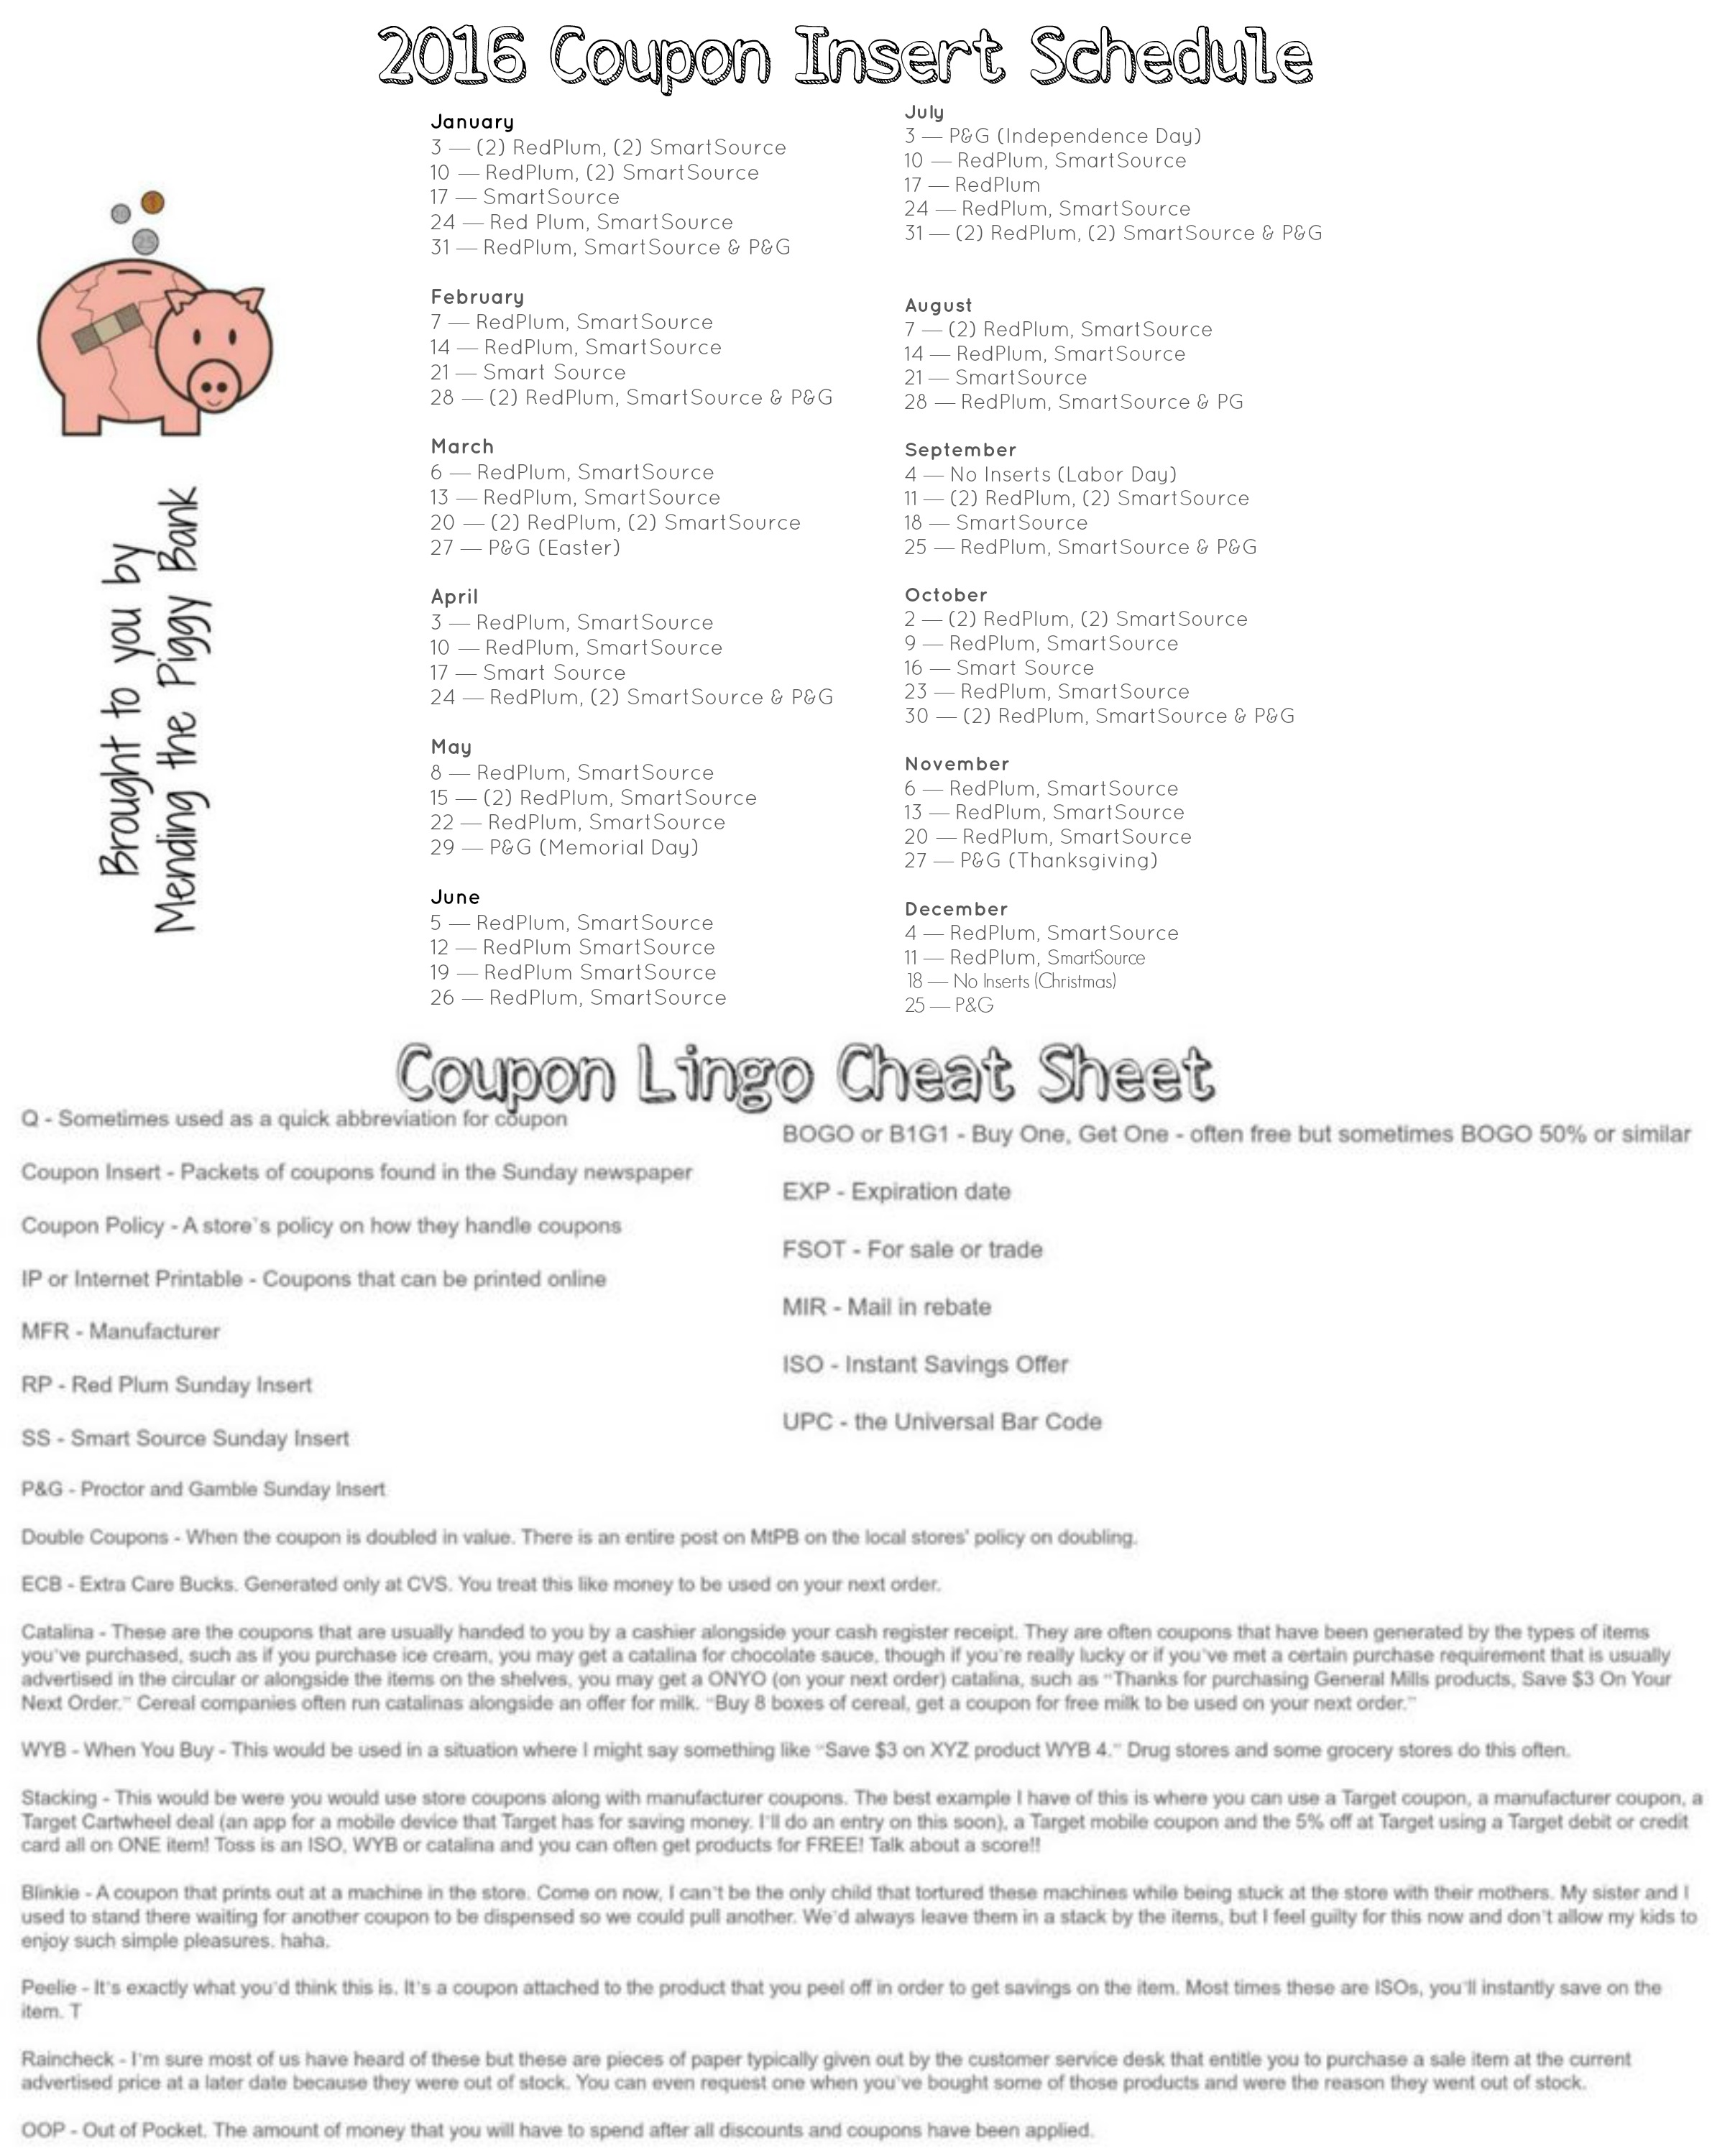 2016 Sunday Coupon Insert Schedule And Coupon Lingo Cheat Sheet Free